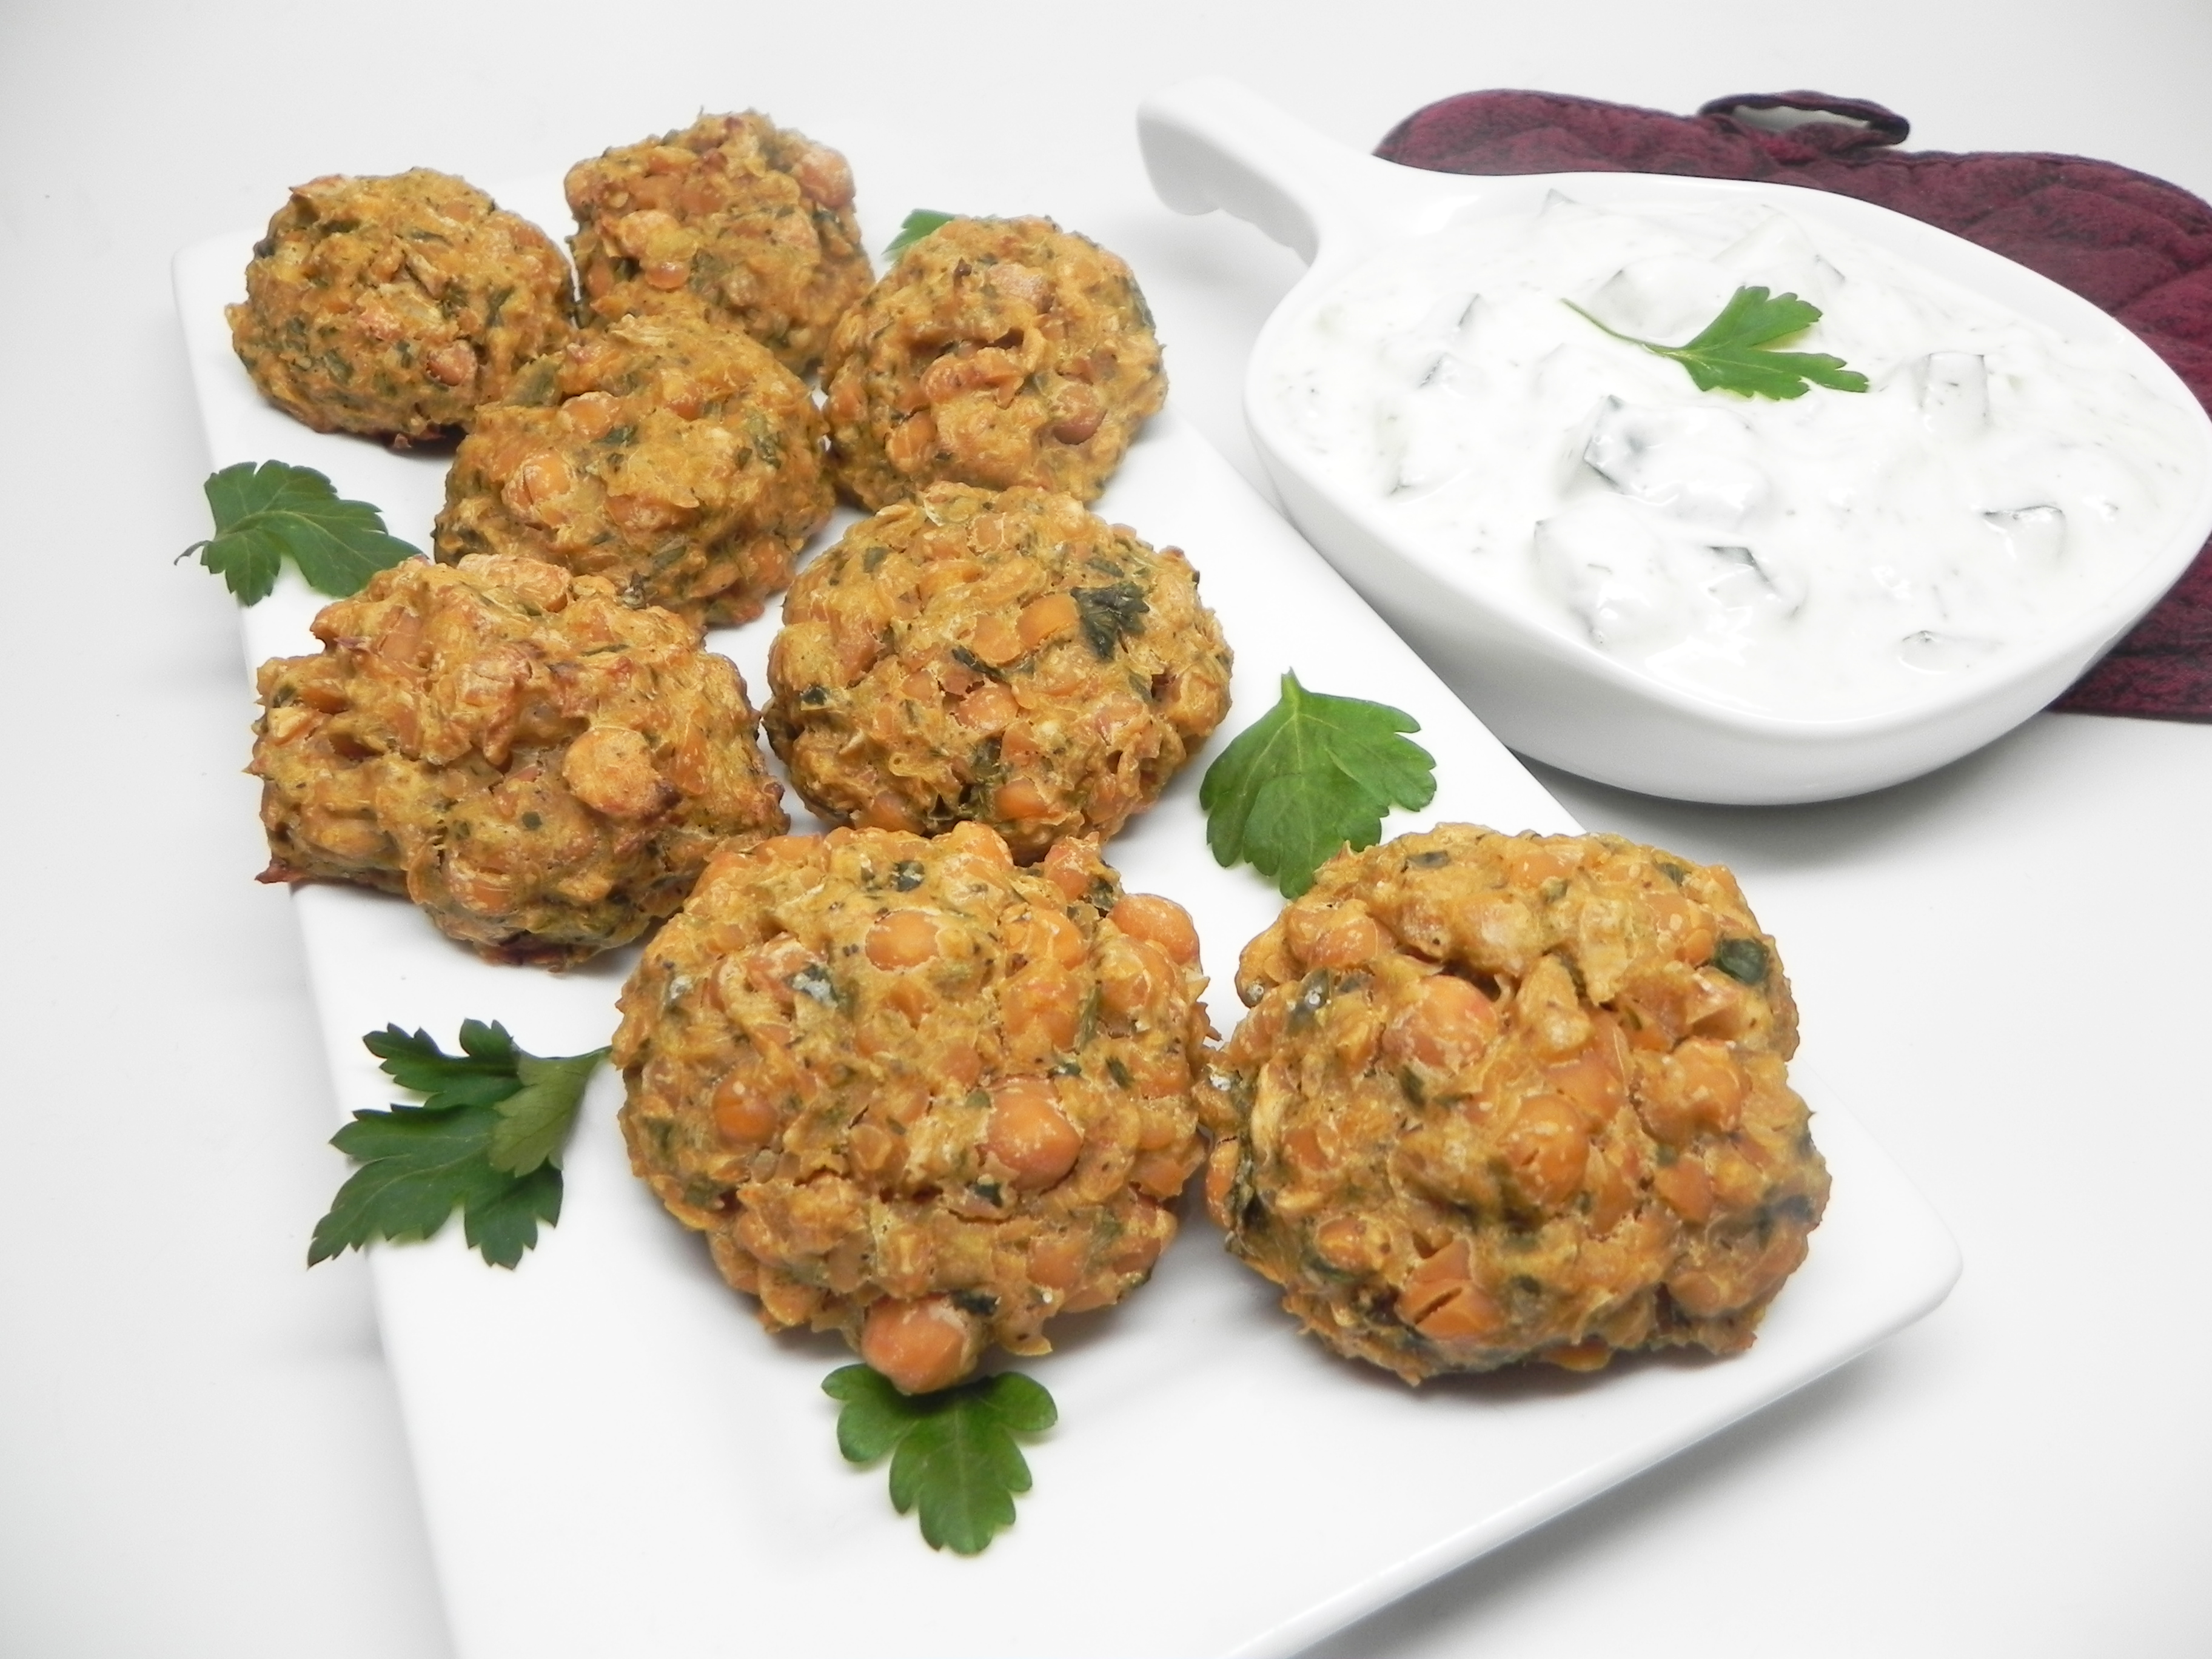 Spicy Baked Falafel with Tzatziki